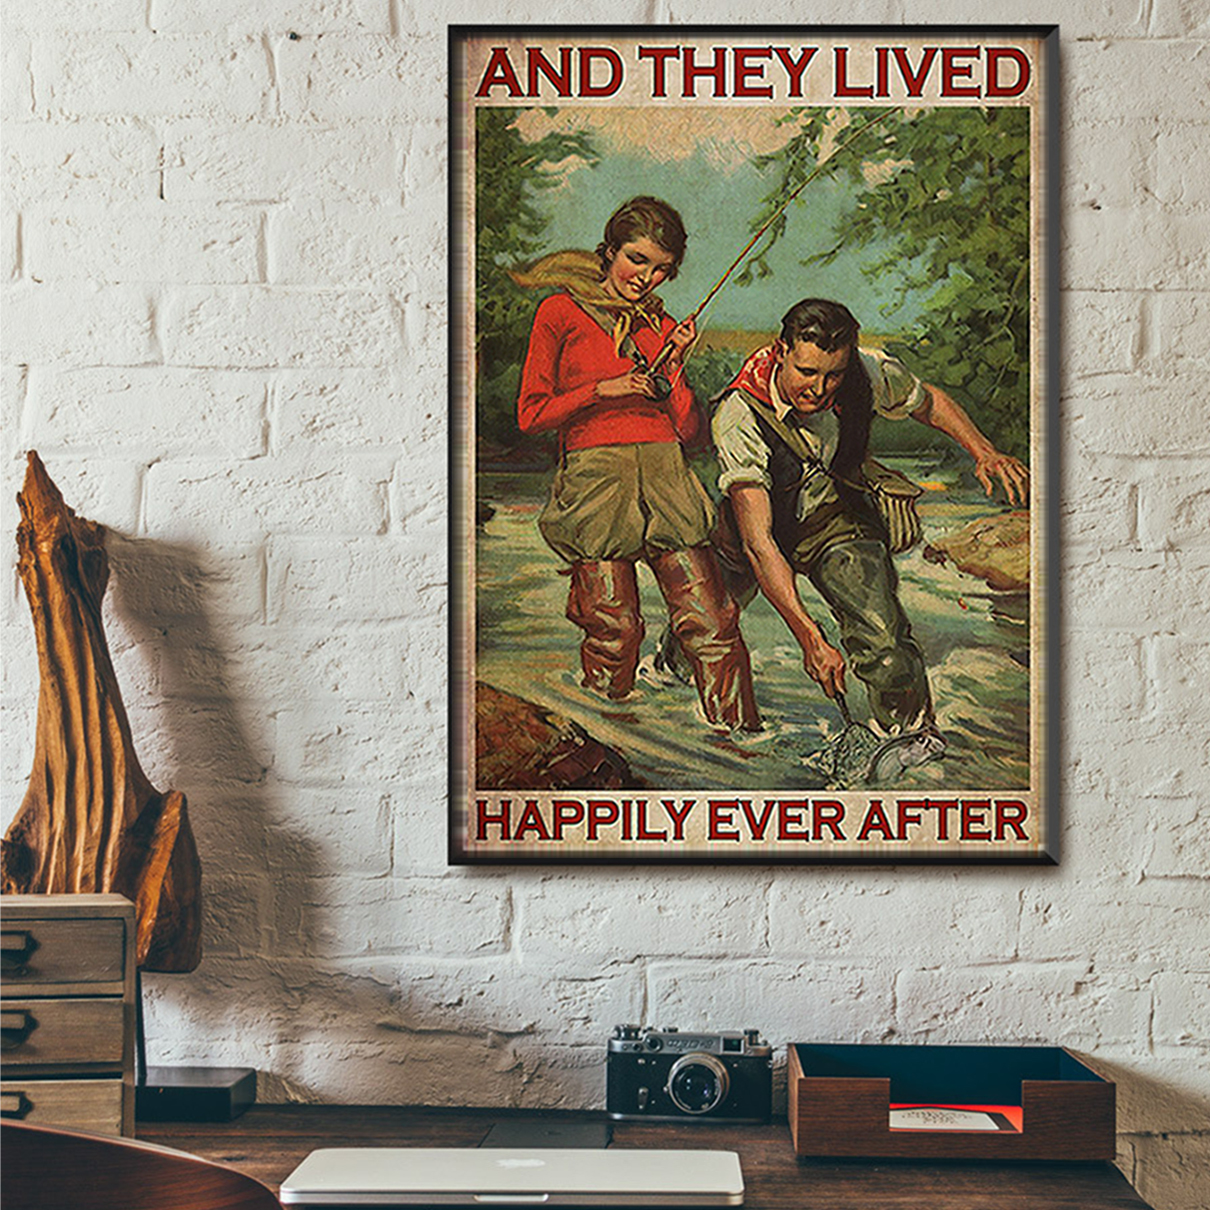 Fishing couple and they lived happily ever after poster A2